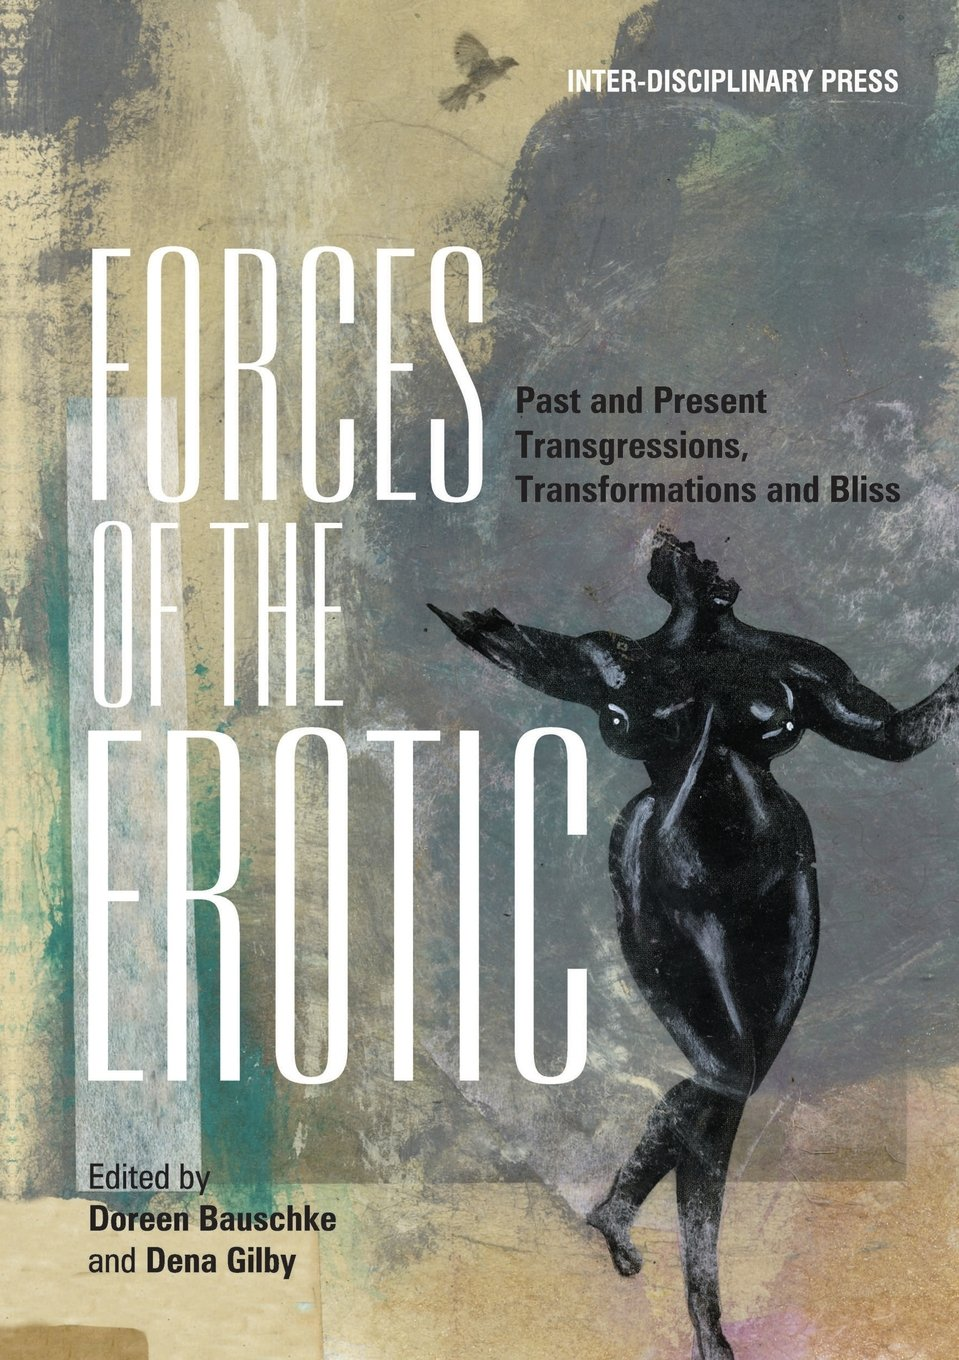 Forces of the Erotic